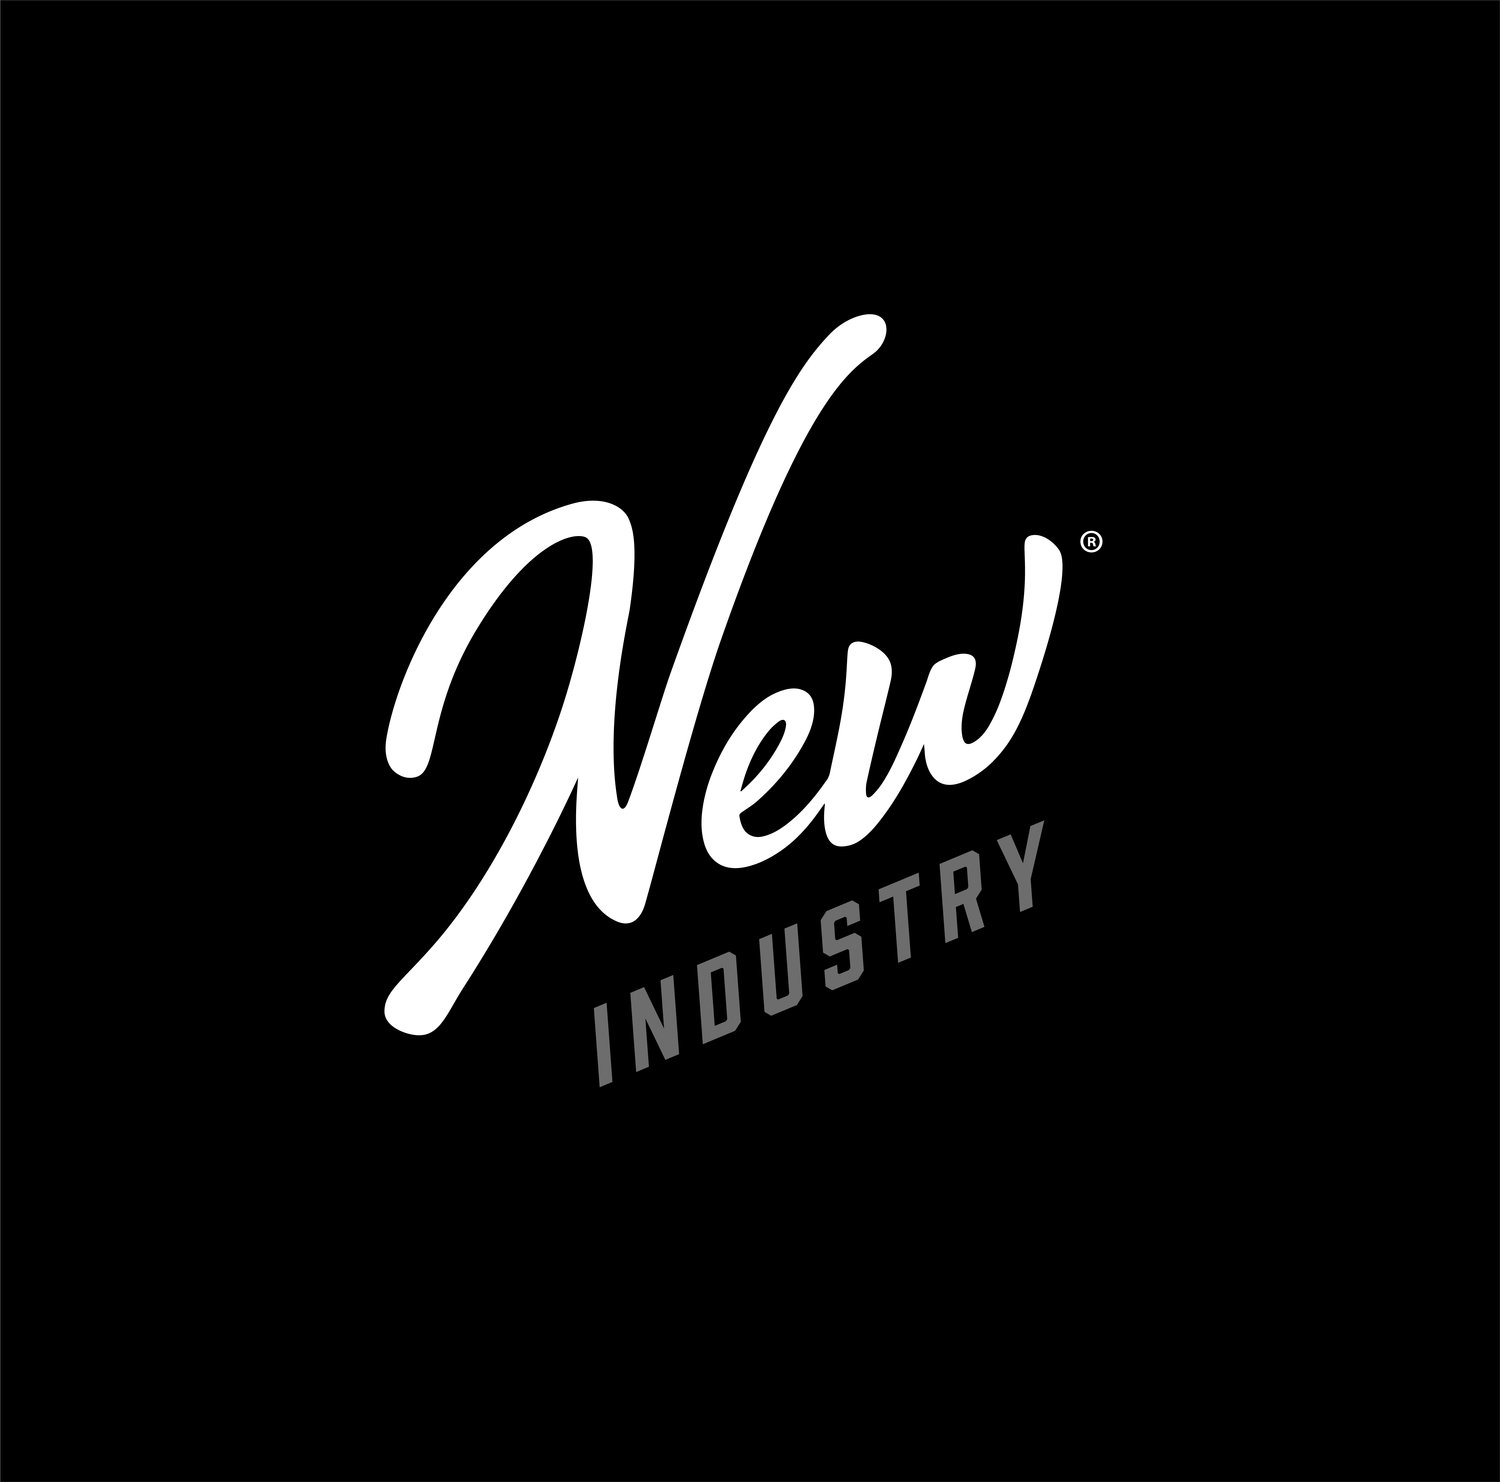 New Industry